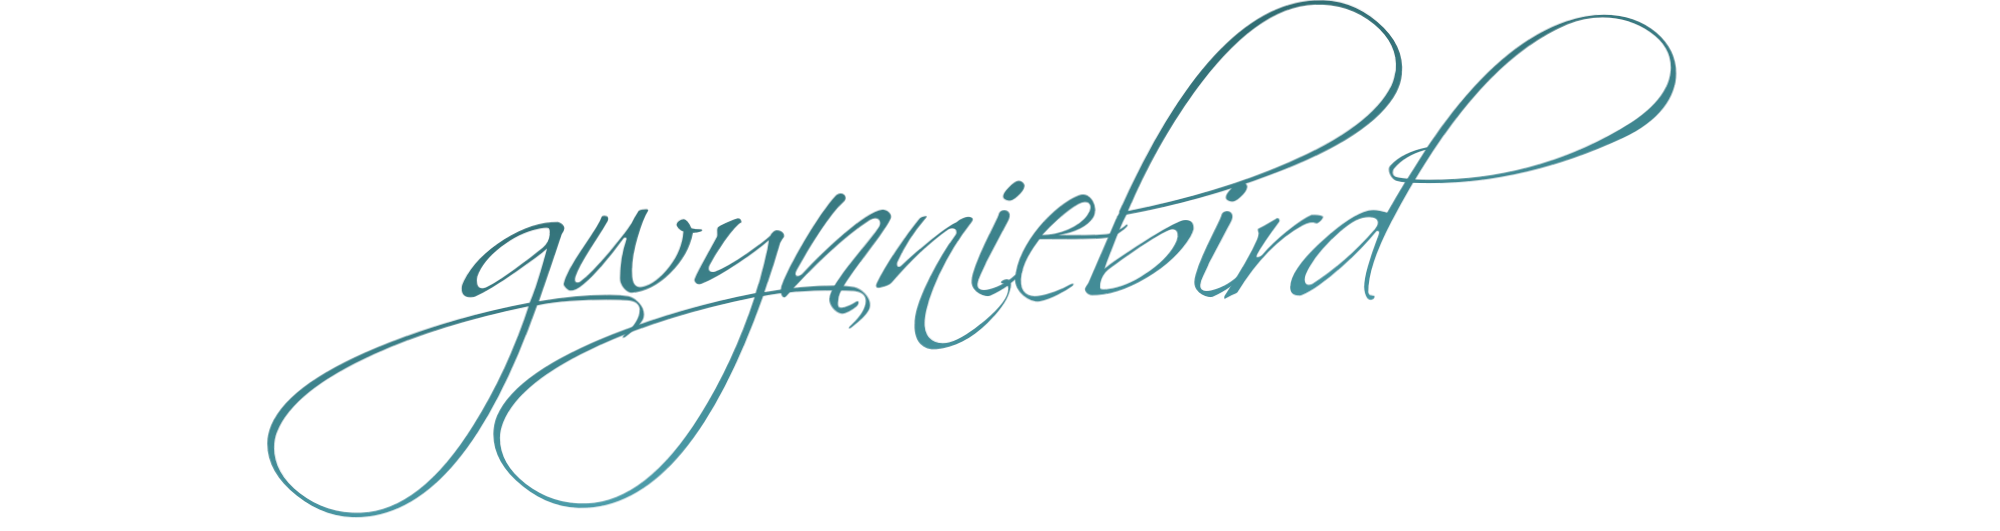 cursive teal blue text which reads gwynniebird